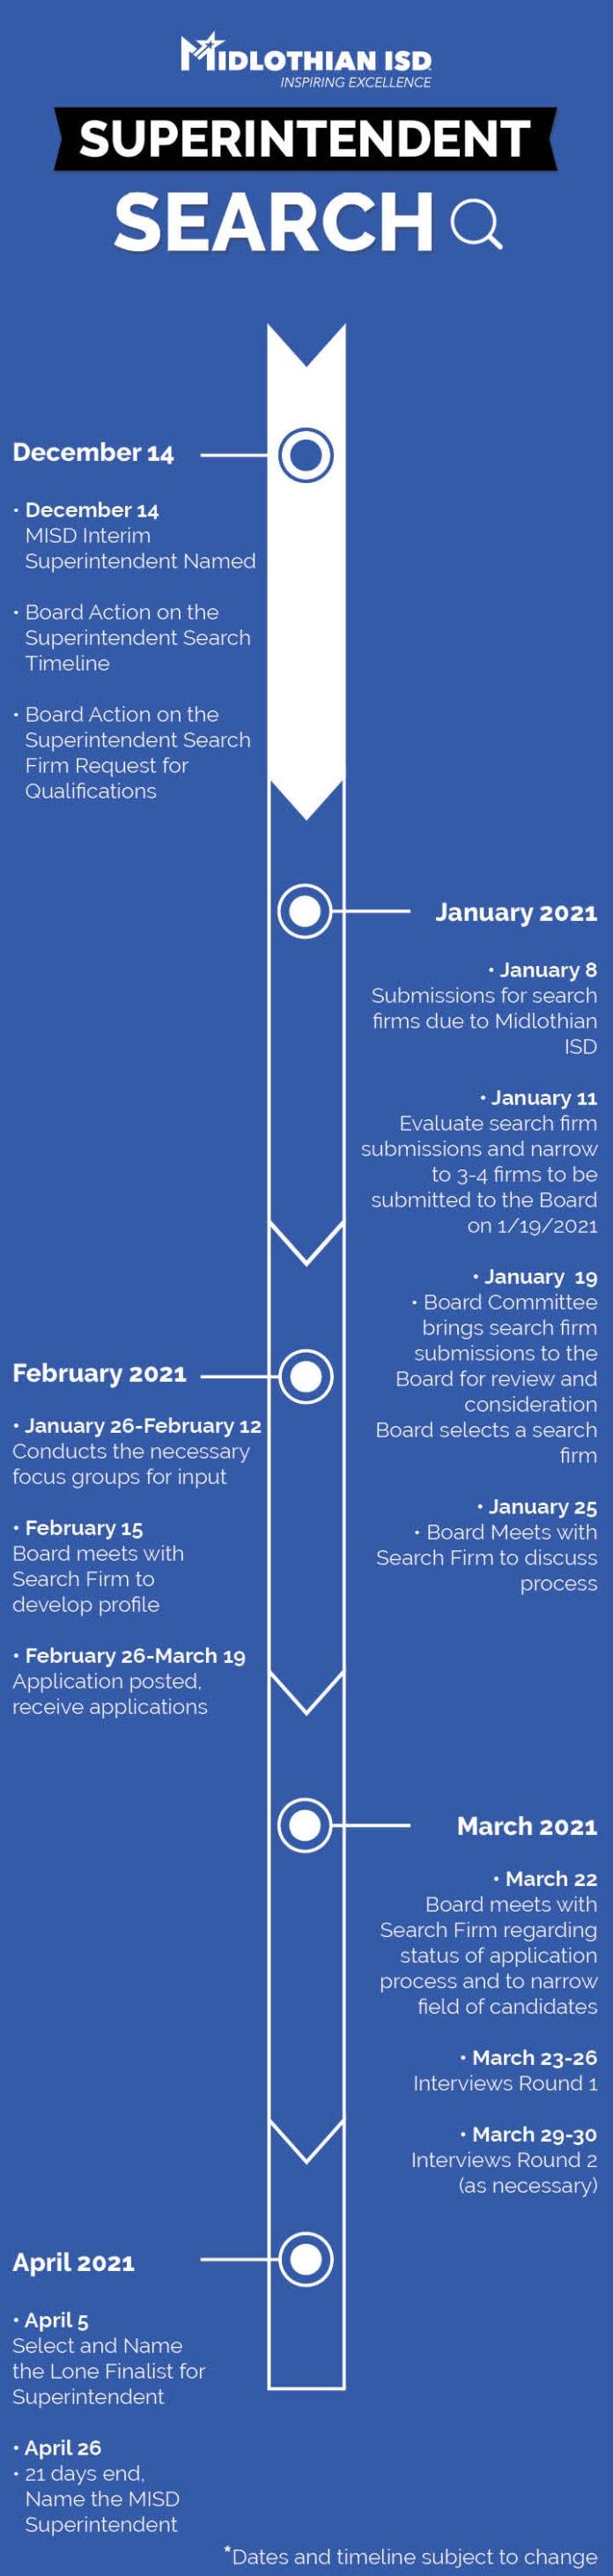 Superintendent Search timeline